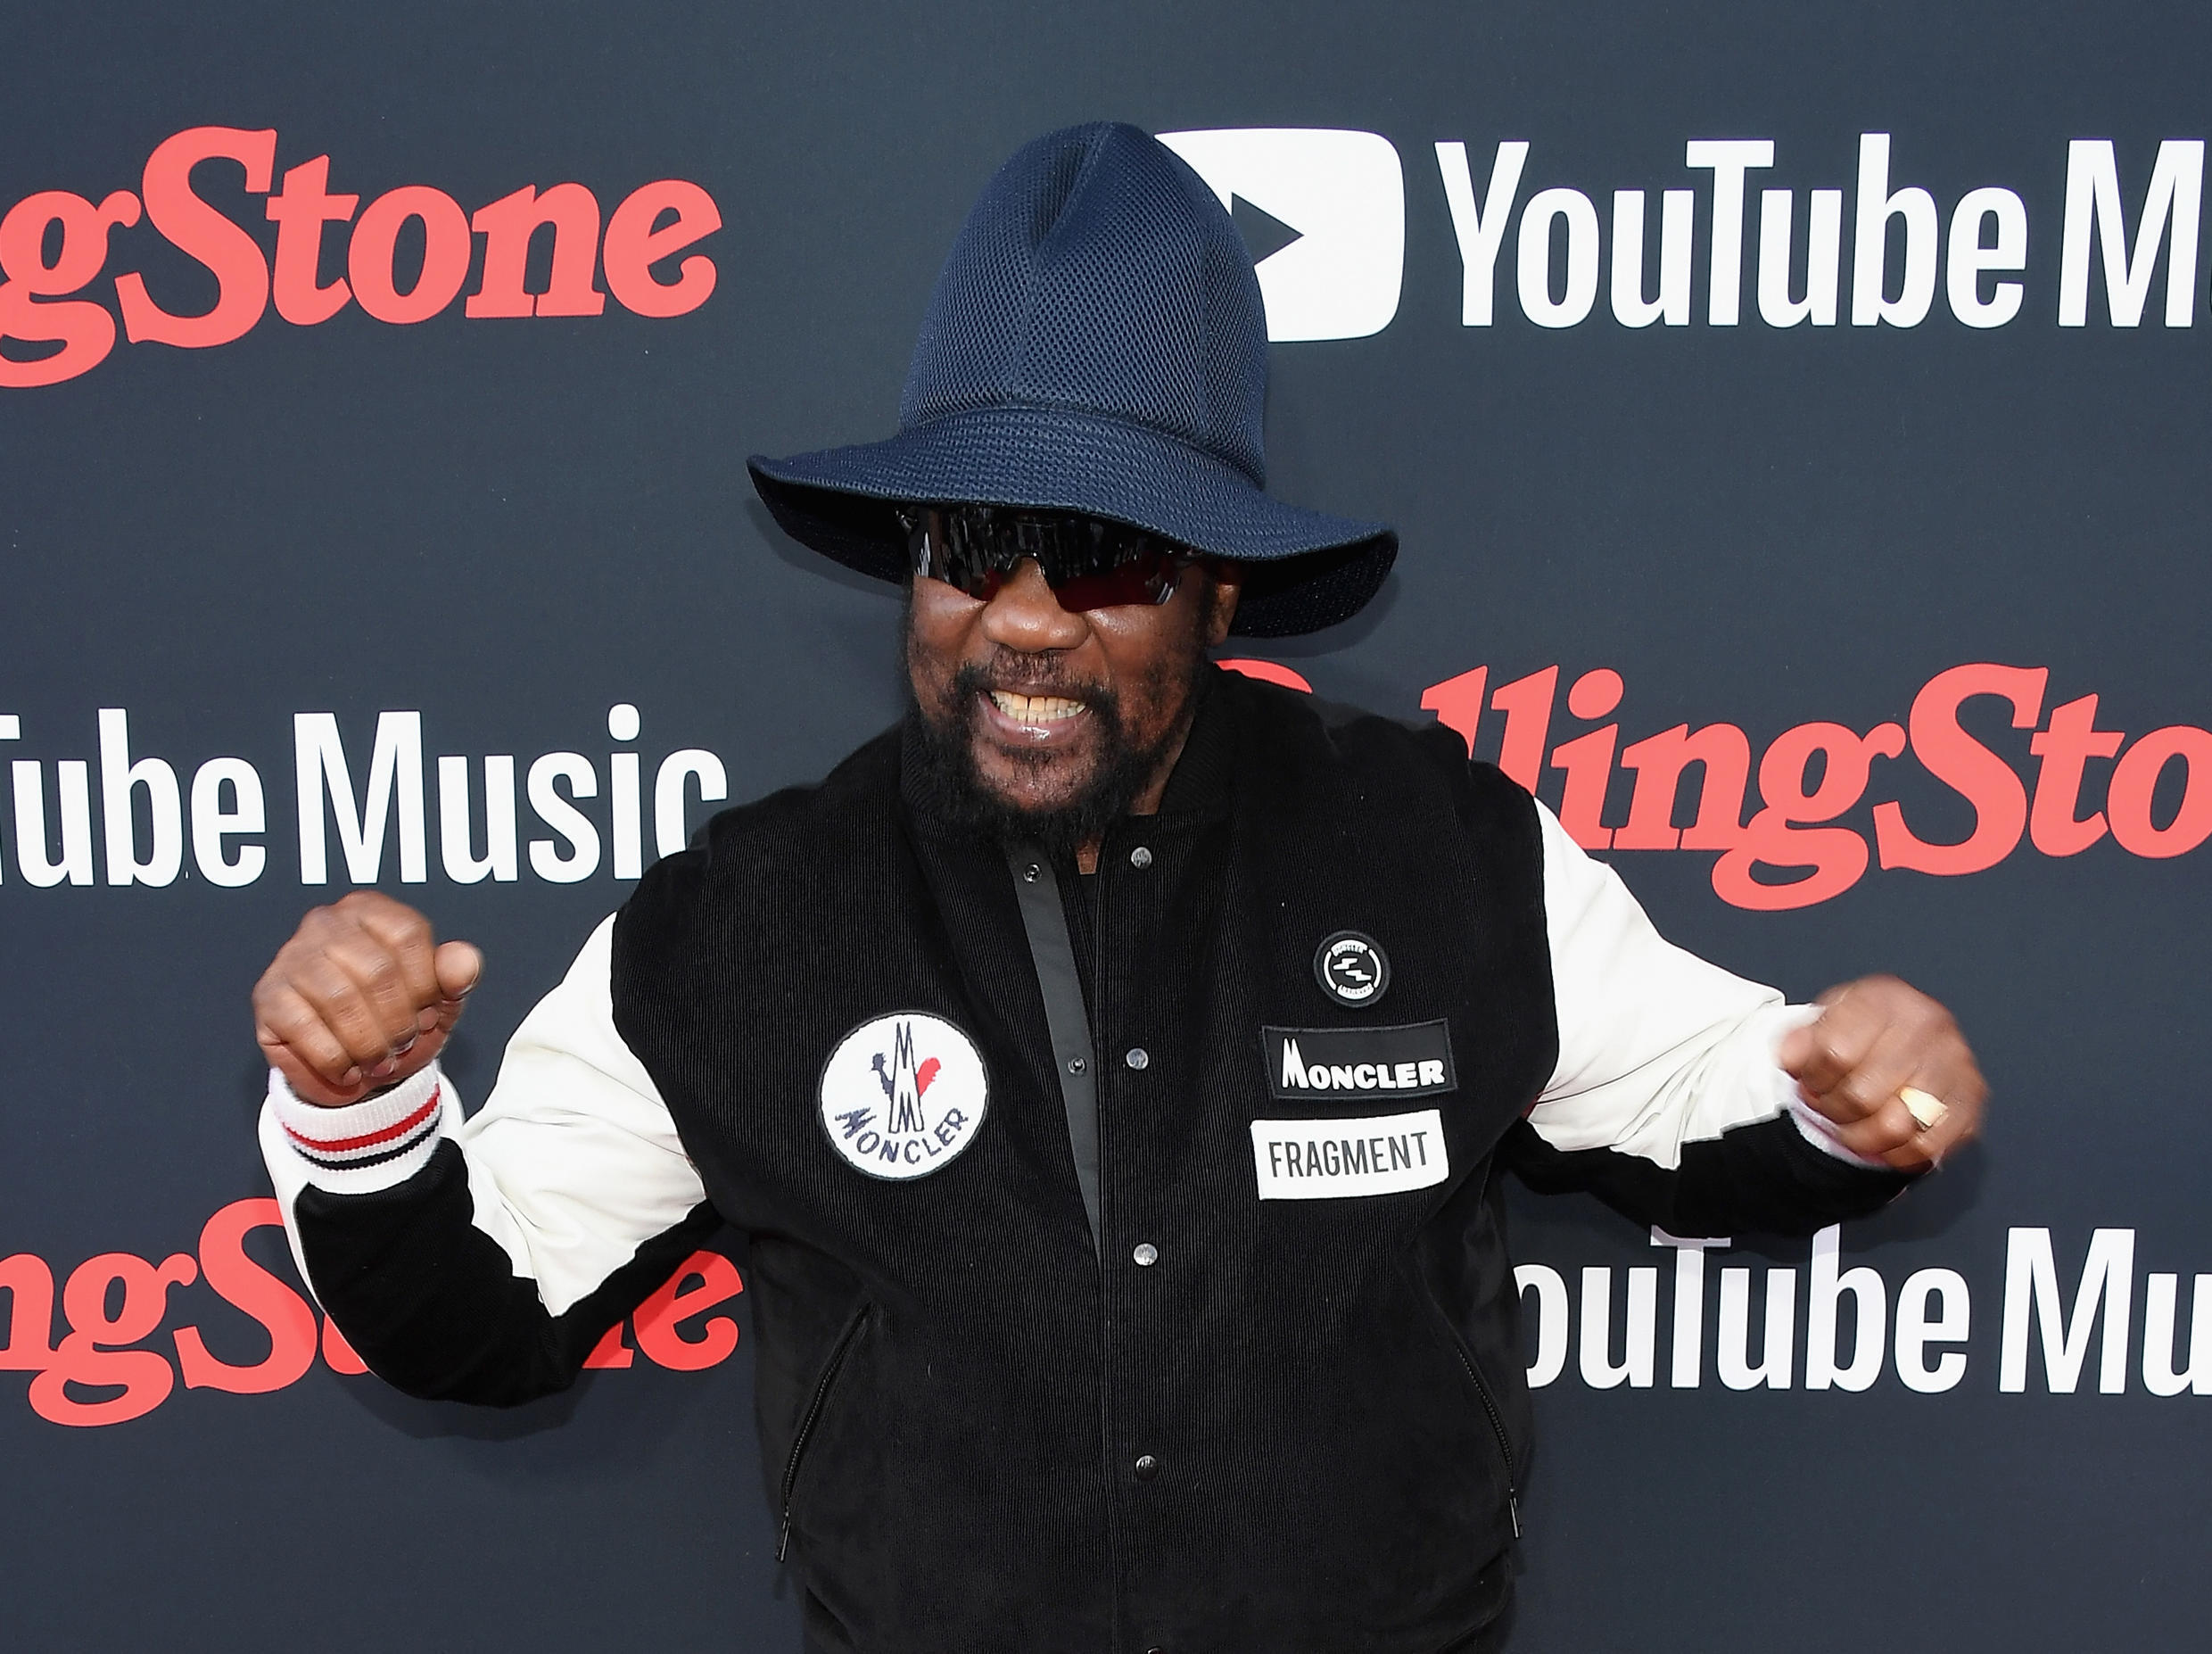 Toots Hibbert, a founding father of reggae music, who died Friday at age 77, is seen here at a Rolling Stone event in 2018 in New York